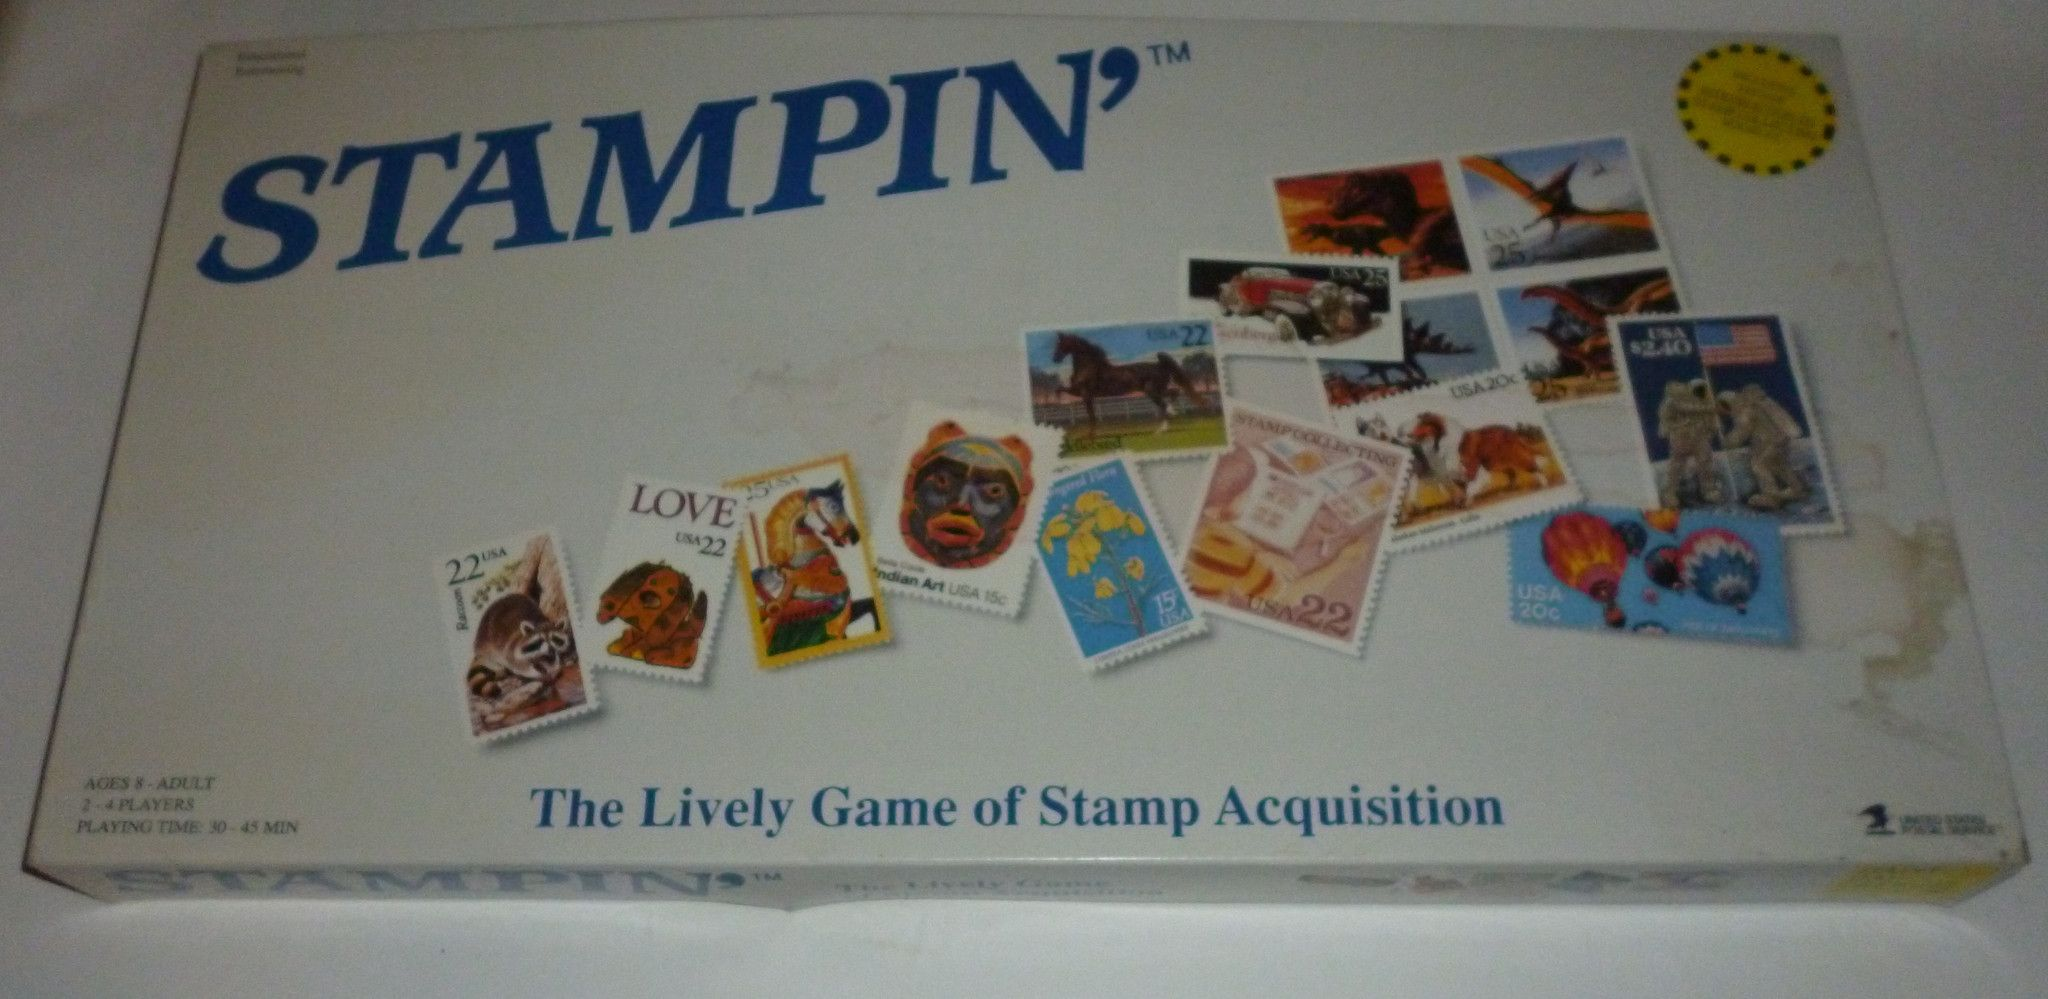 Stampin Stamp Collecting Post Office USPS Board Game